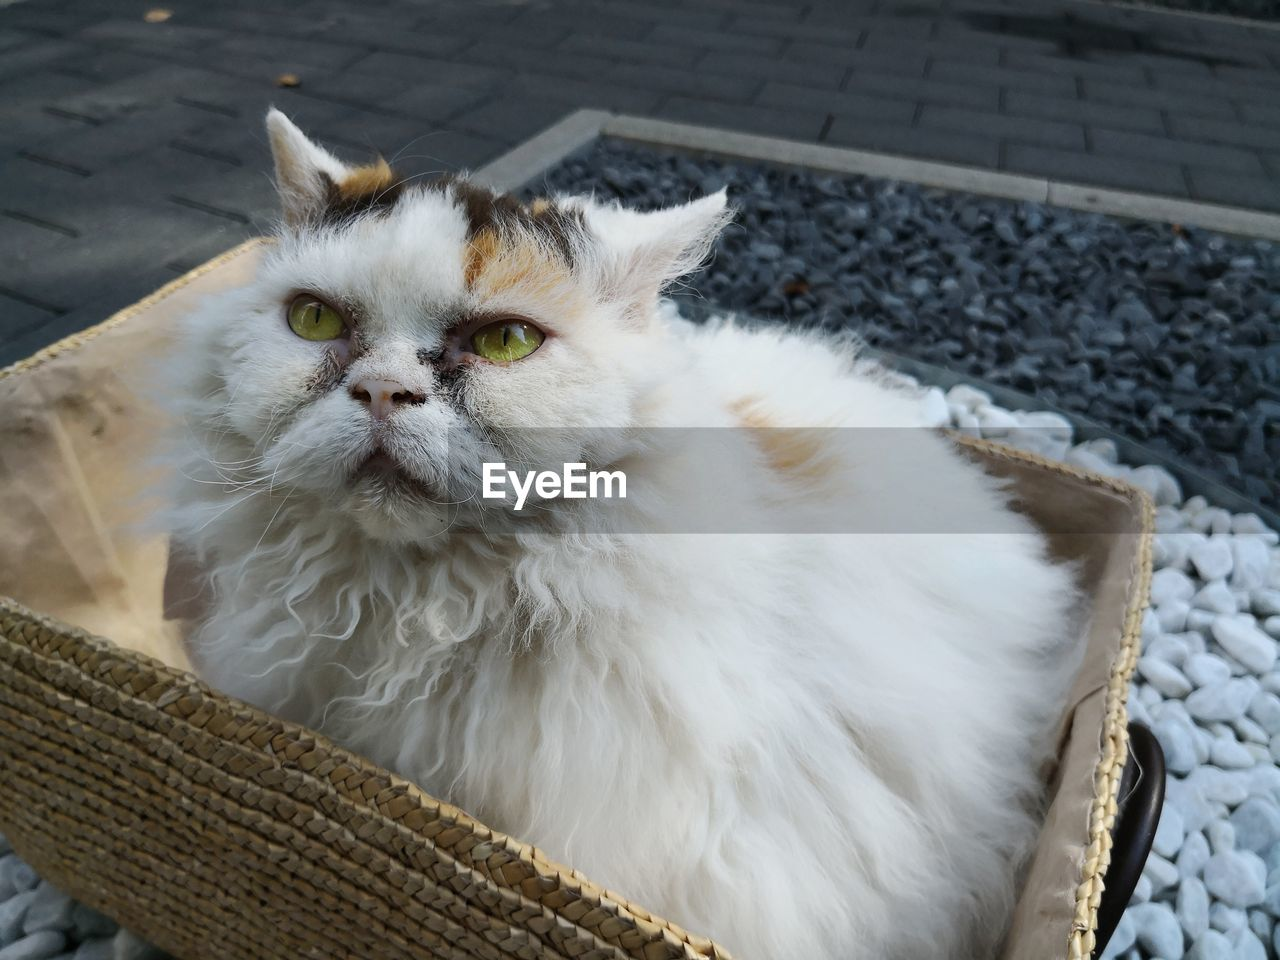 animal themes, domestic animals, domestic, pets, animal, one animal, mammal, cat, domestic cat, feline, vertebrate, no people, portrait, day, white color, relaxation, basket, looking at camera, looking, whisker, persian cat